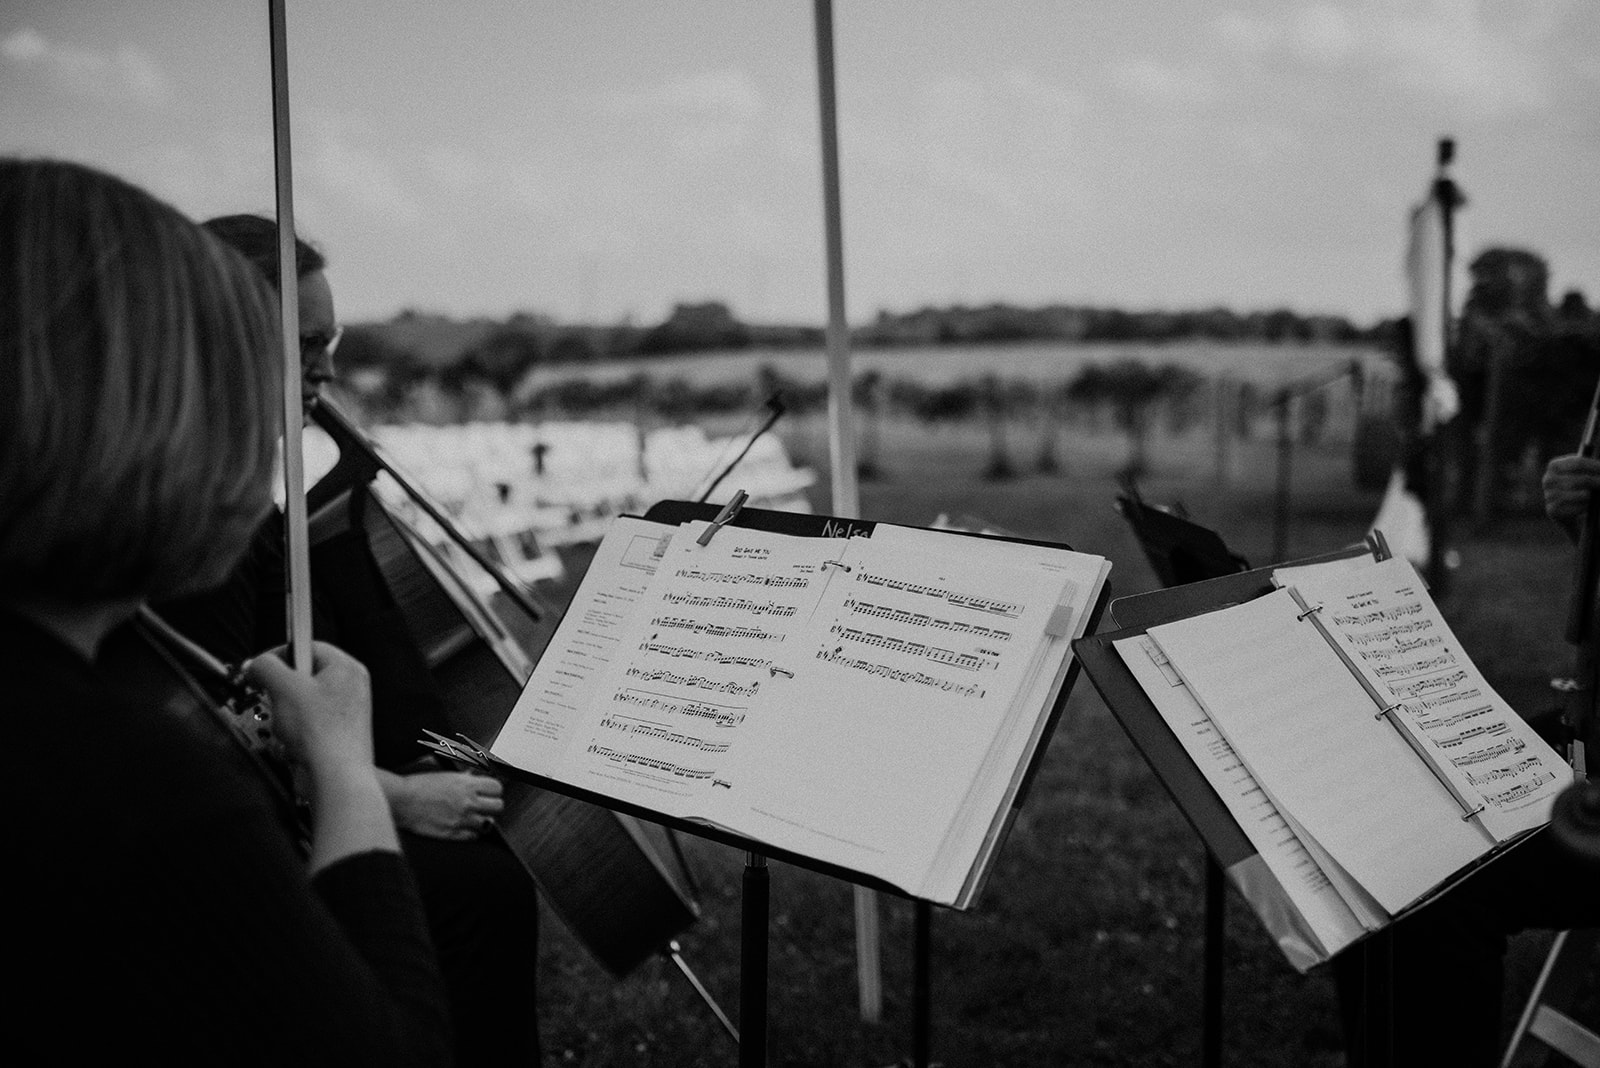 overthevineswisconsinwedding_0486.jpg